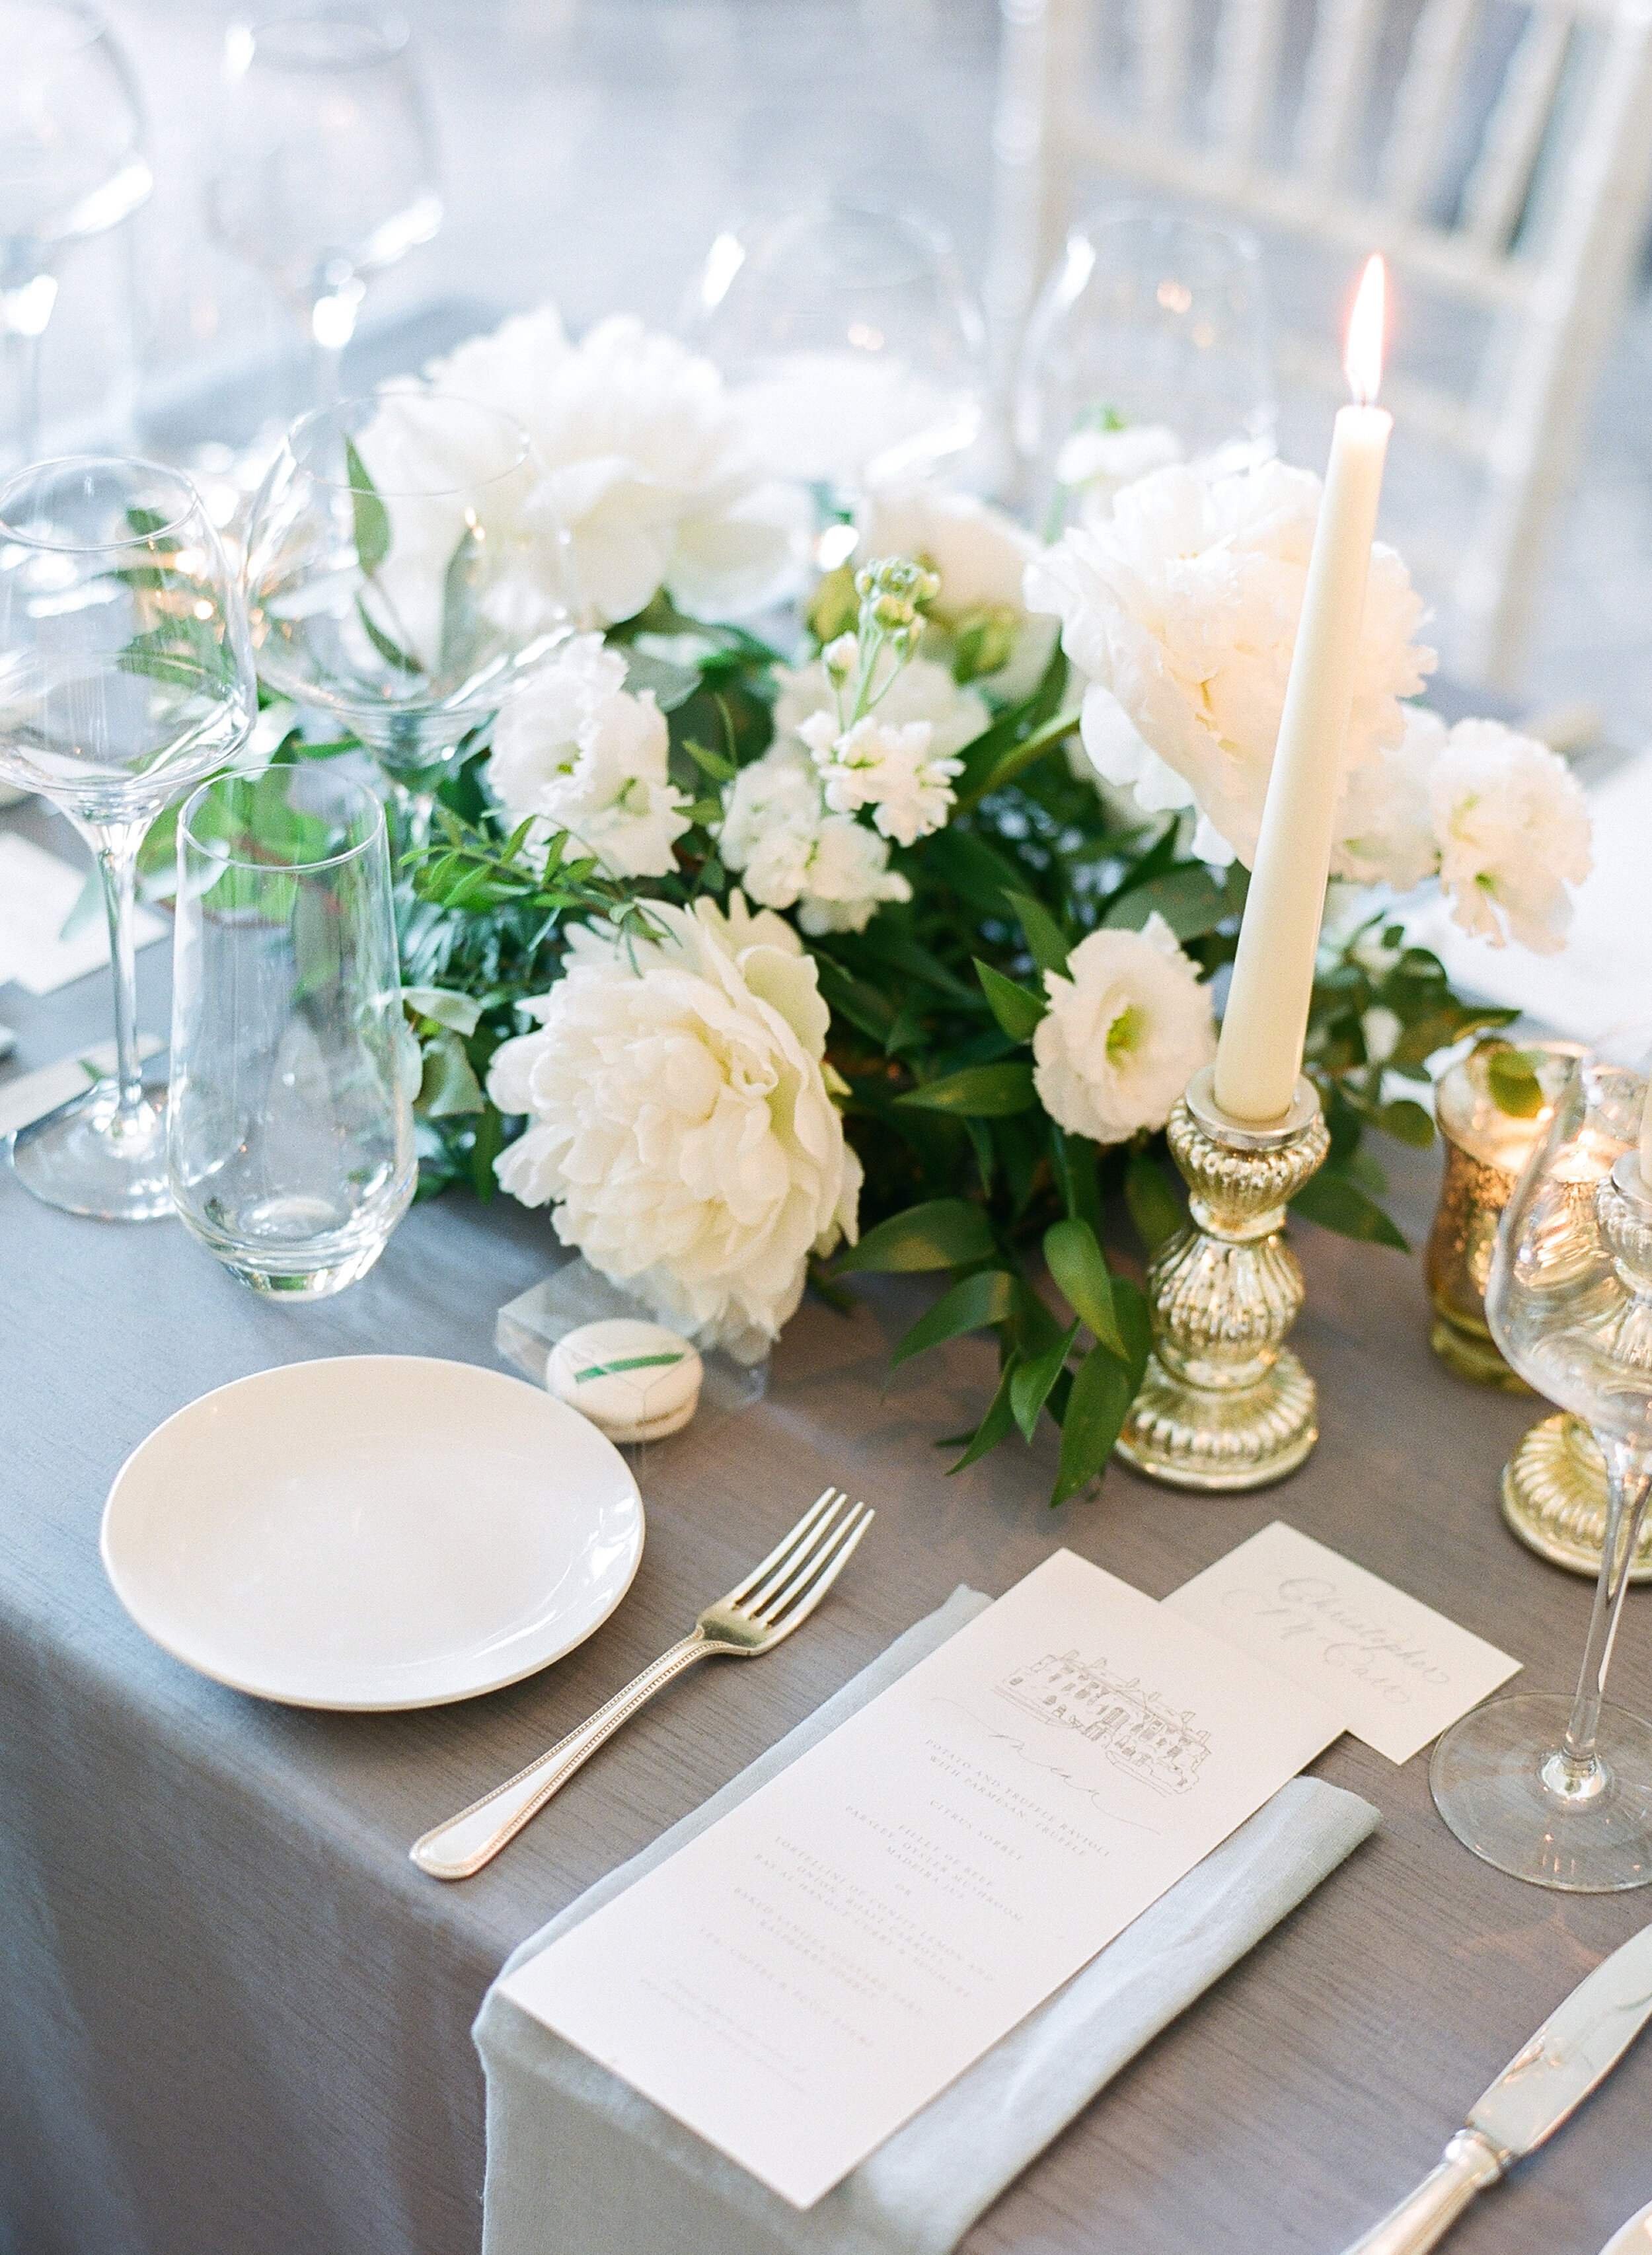 Bella-Botanica-Flowers-Molly-Carr-Photography-Reception-Table -Florals-177.JPG